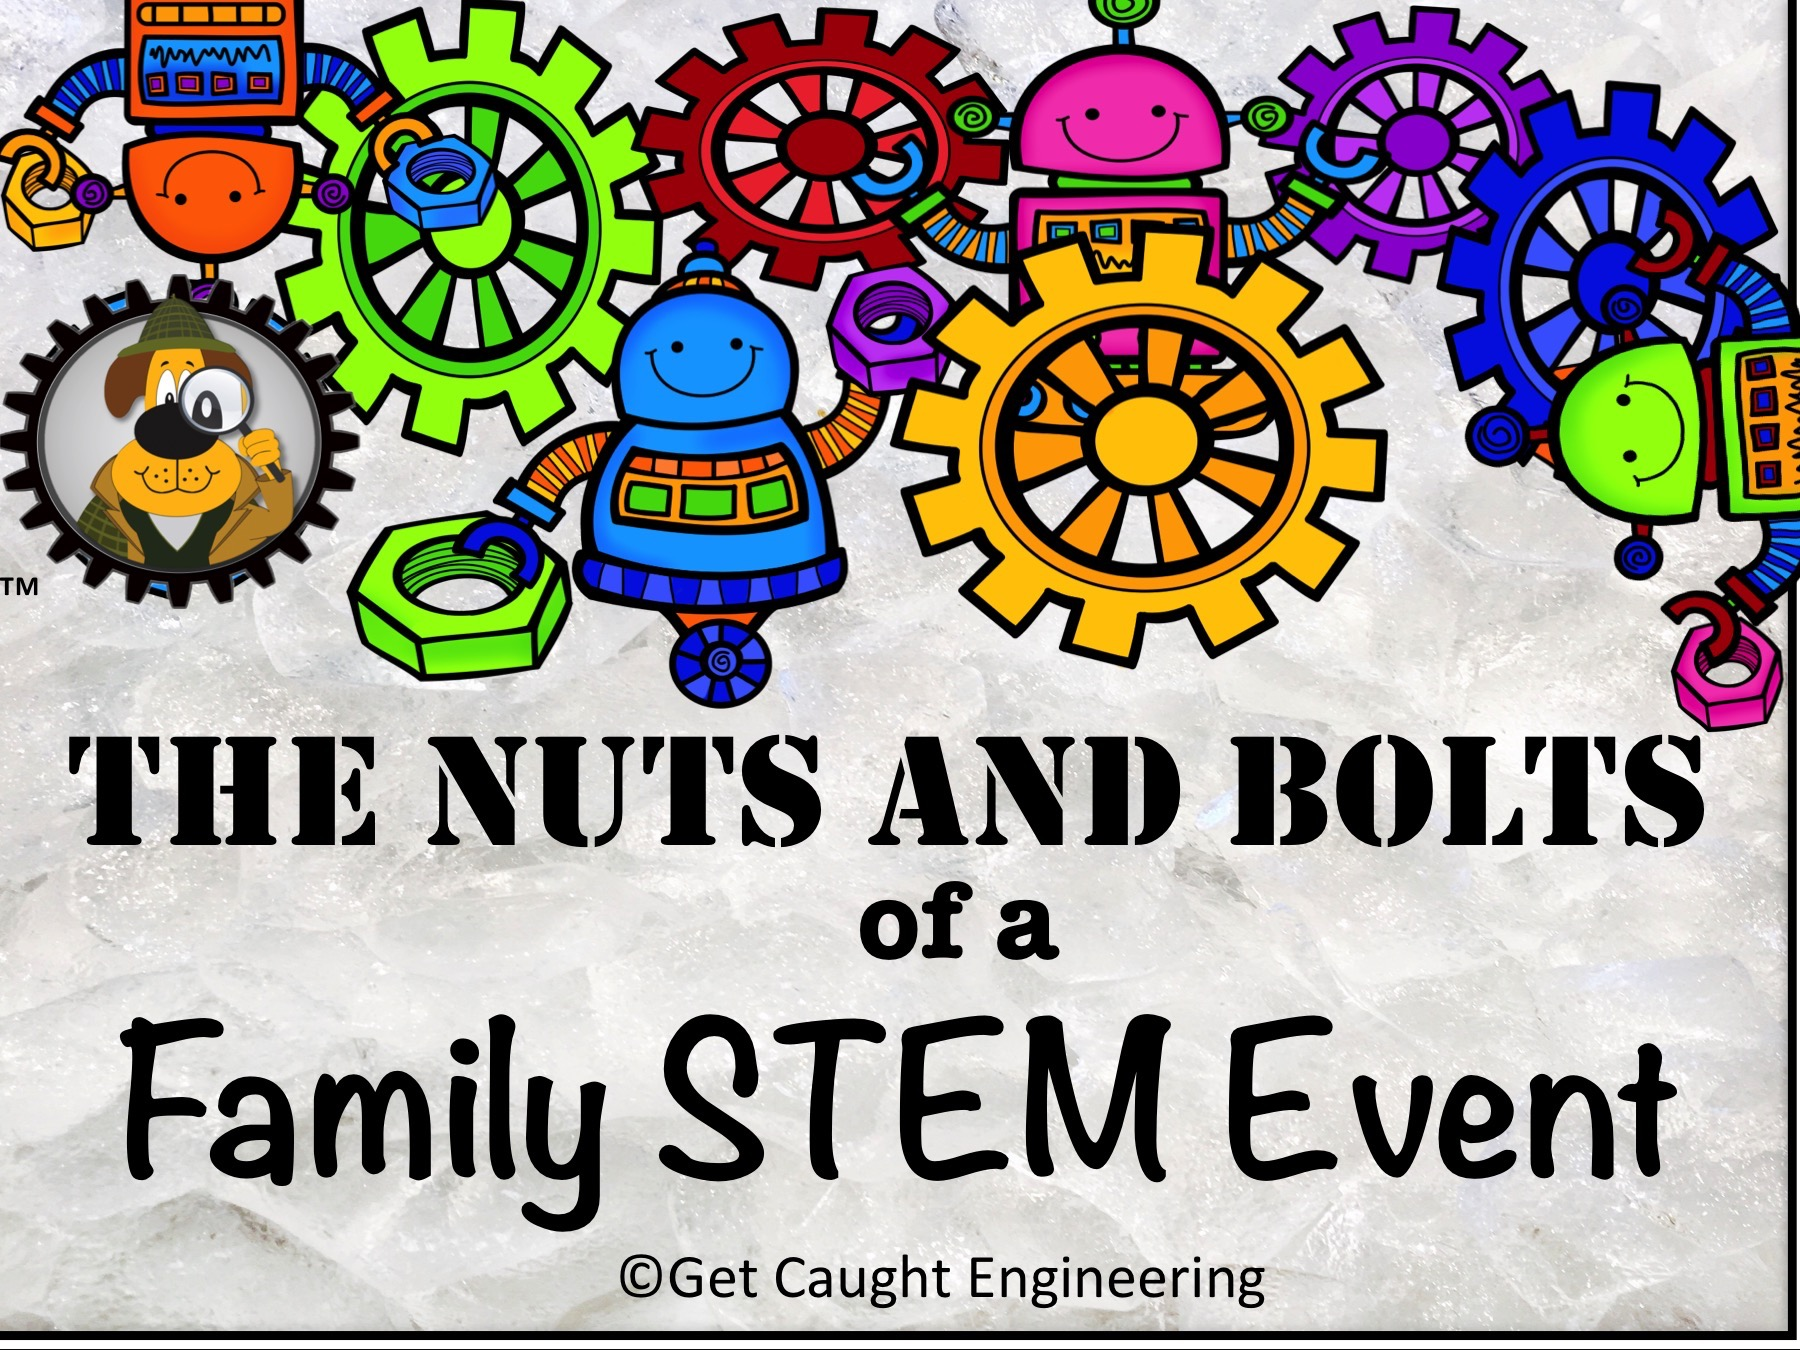 The Nuts and Bolts of a Family STEM Event